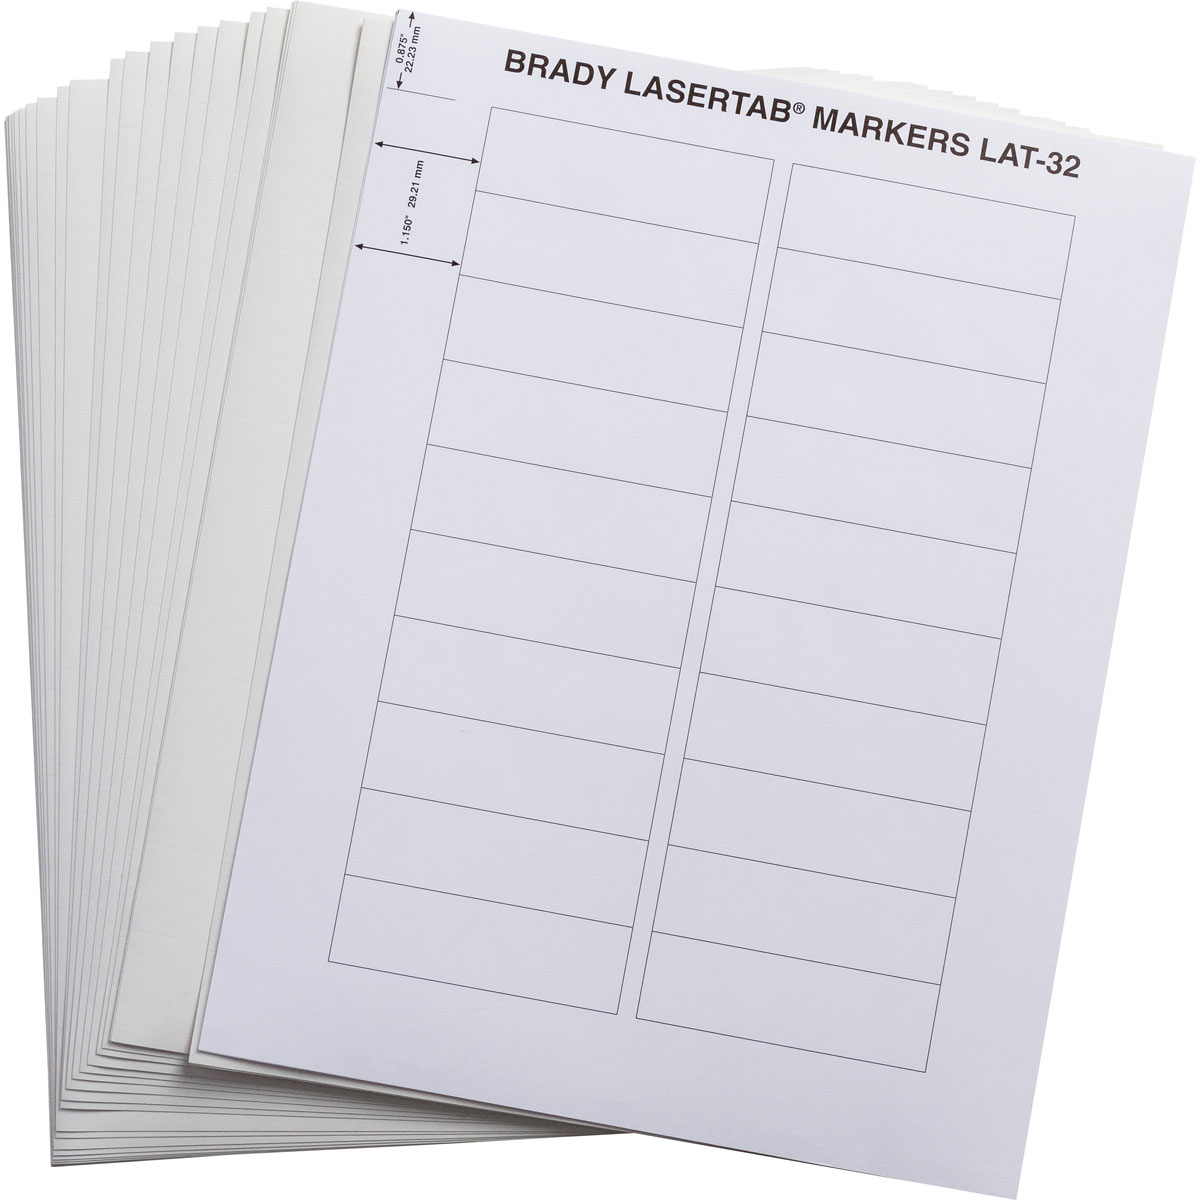 brady label templates - brady part lat 32 759 1 lasertab laser printable labels